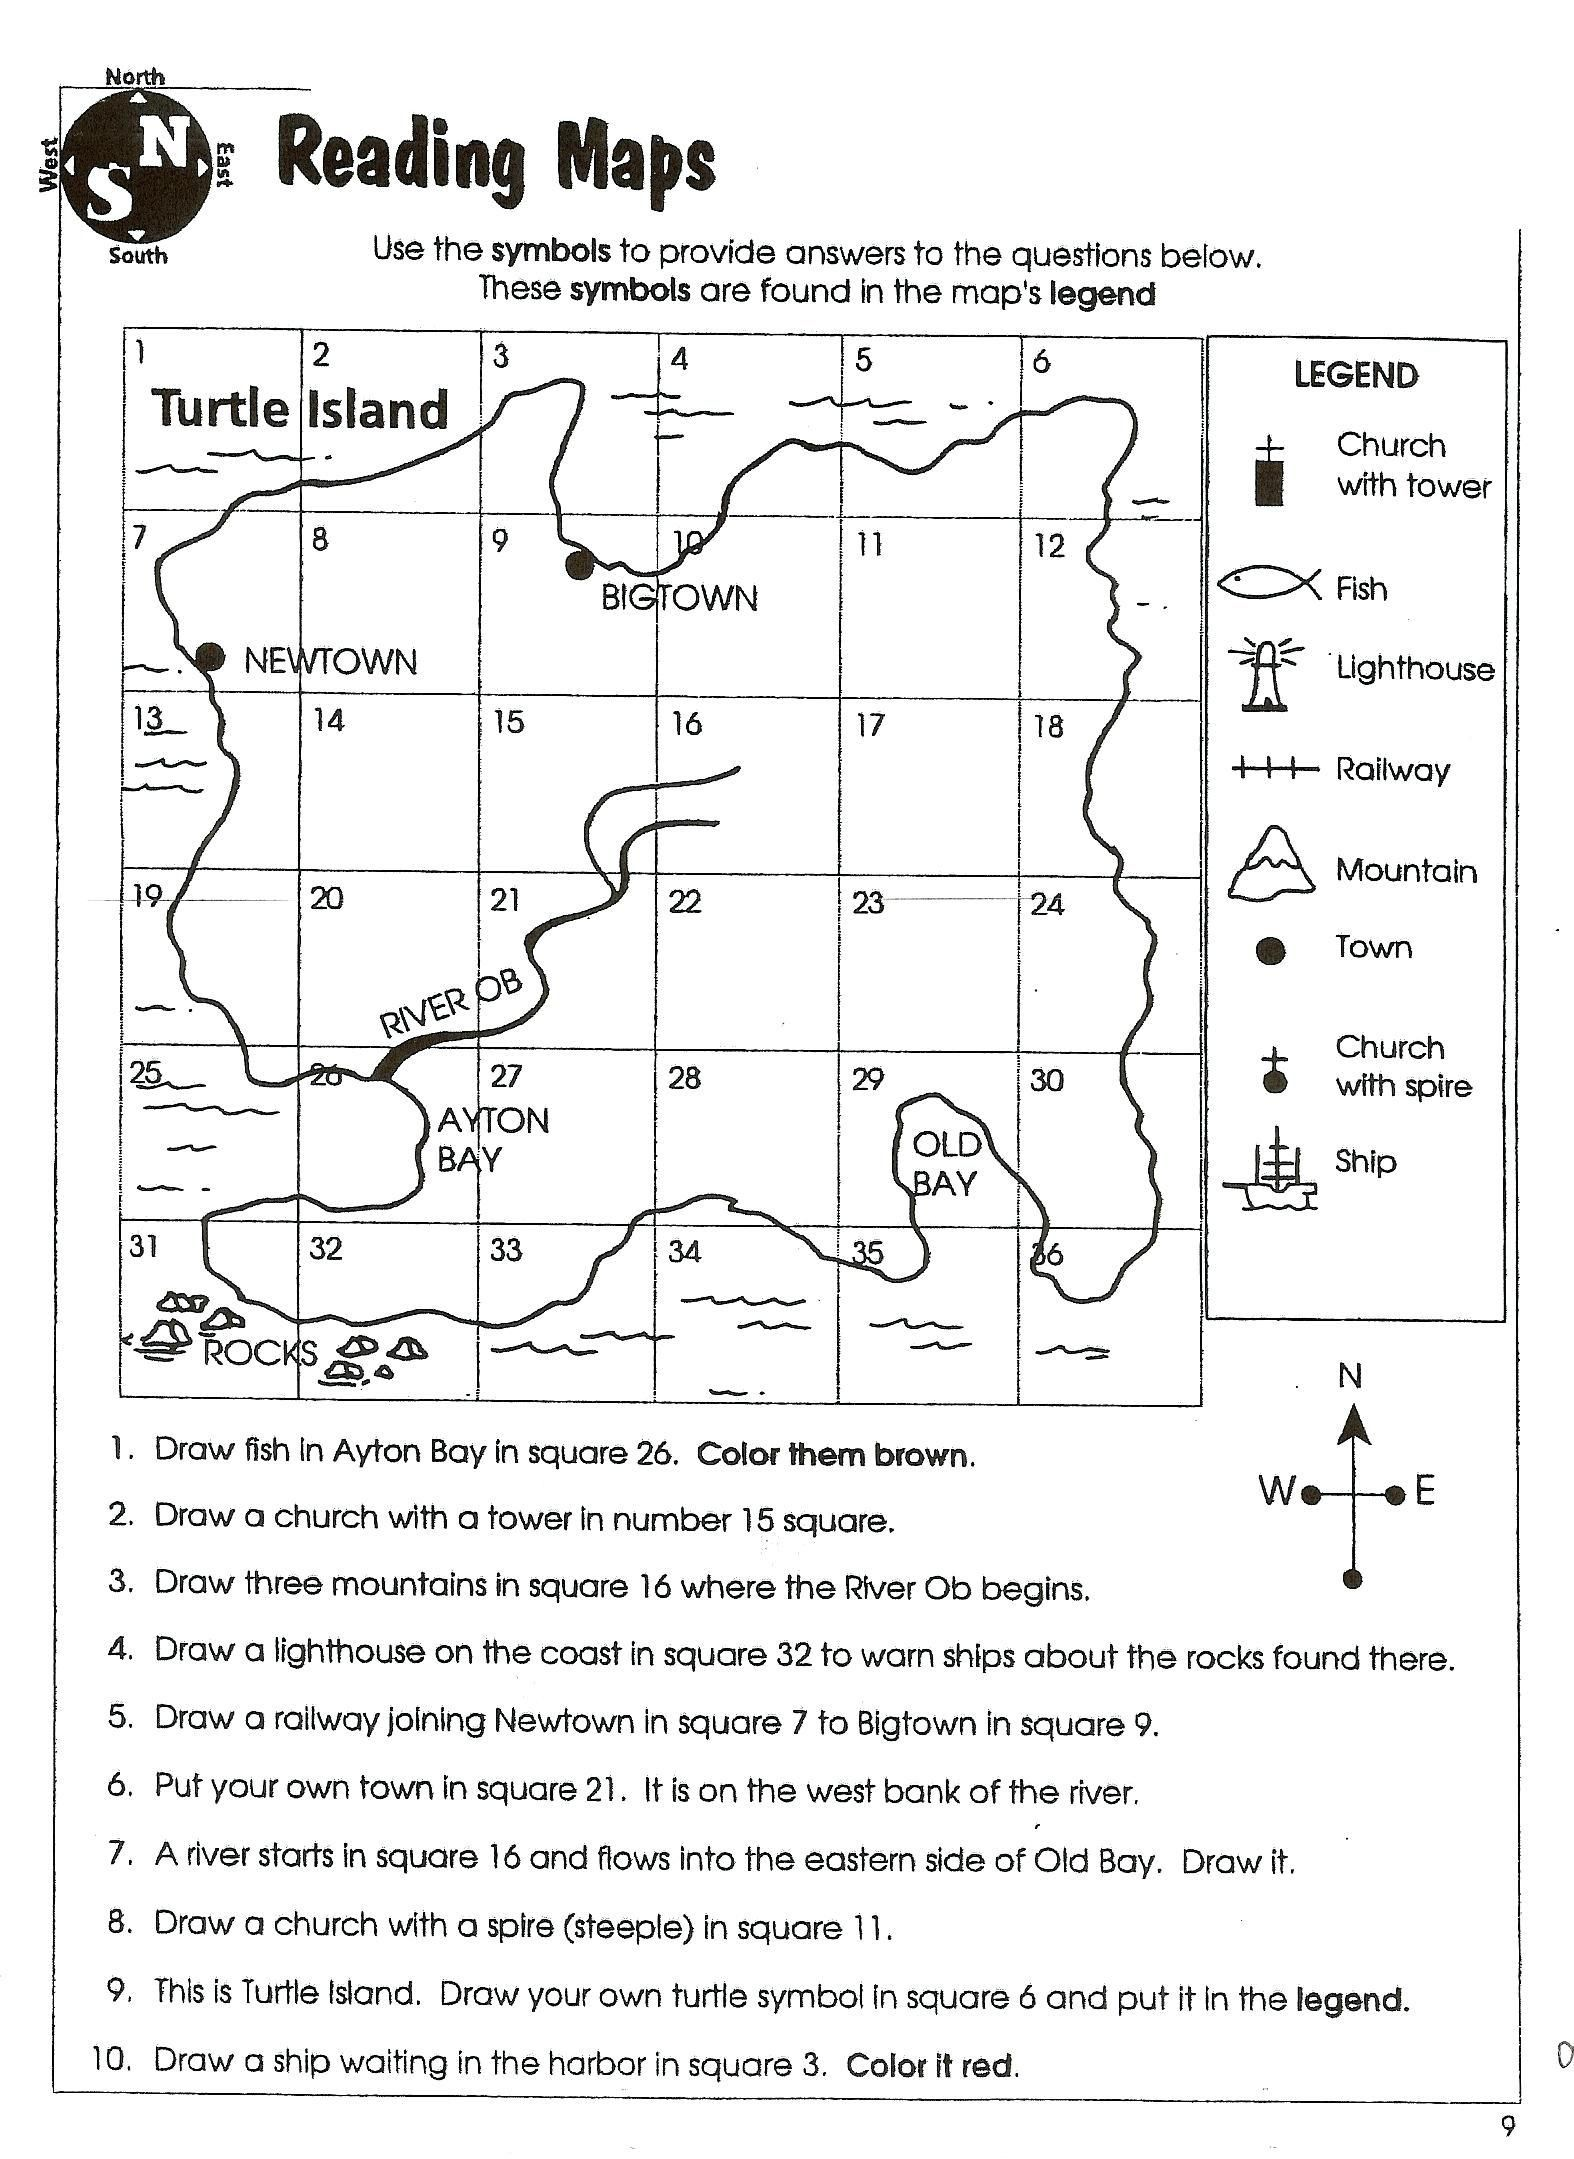 Map Scale Worksheet 3rd Grade Map Skill Worksheets 2nd Grade In 2020 Social Studies Worksheets Map Skills Worksheets 3rd Grade Social Studies